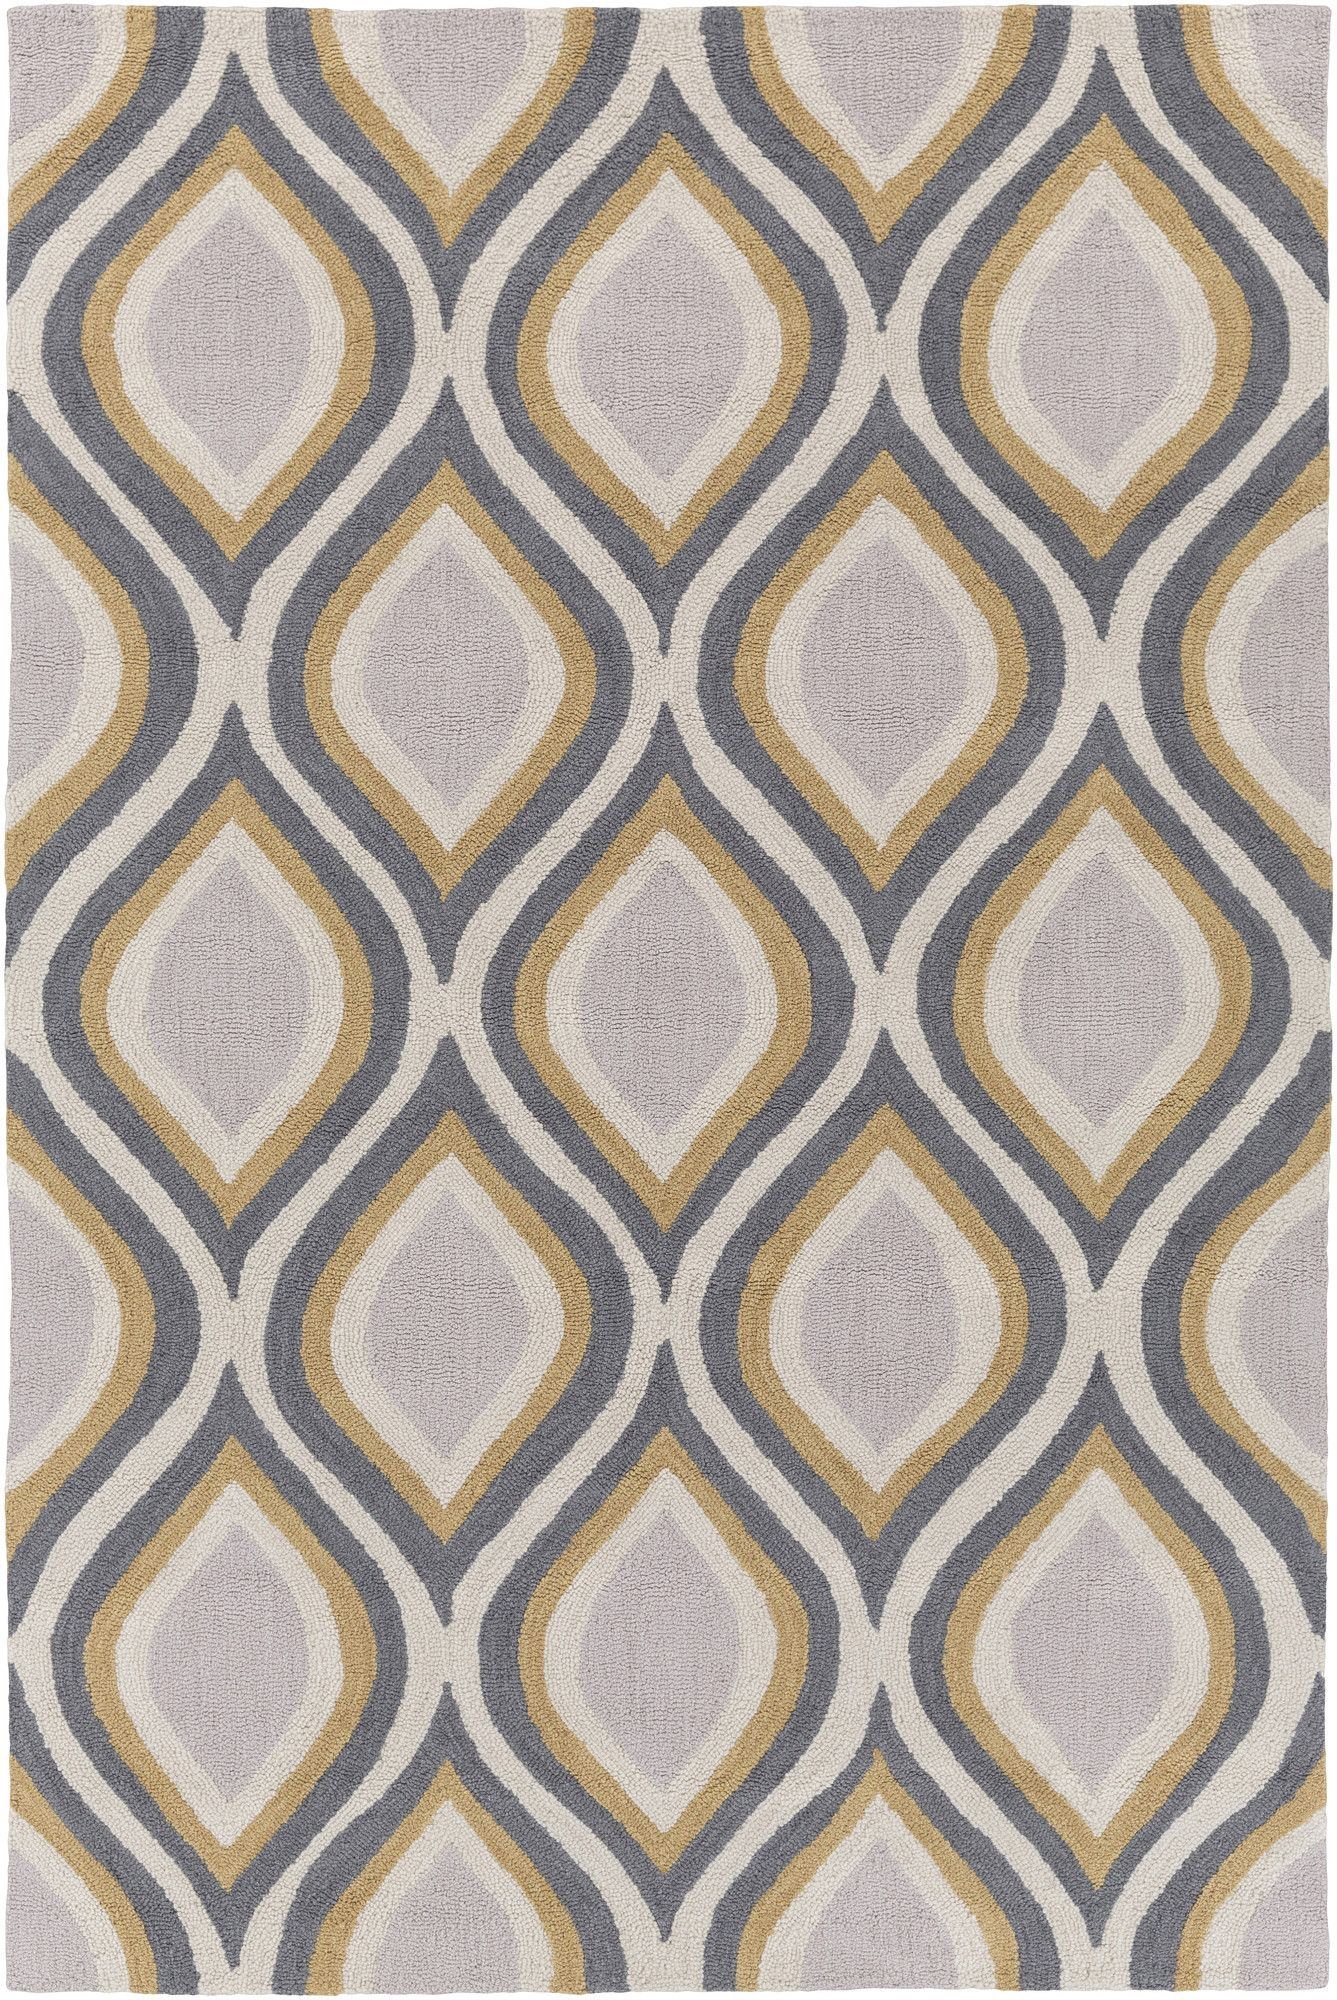 Holden lucy gray area rug